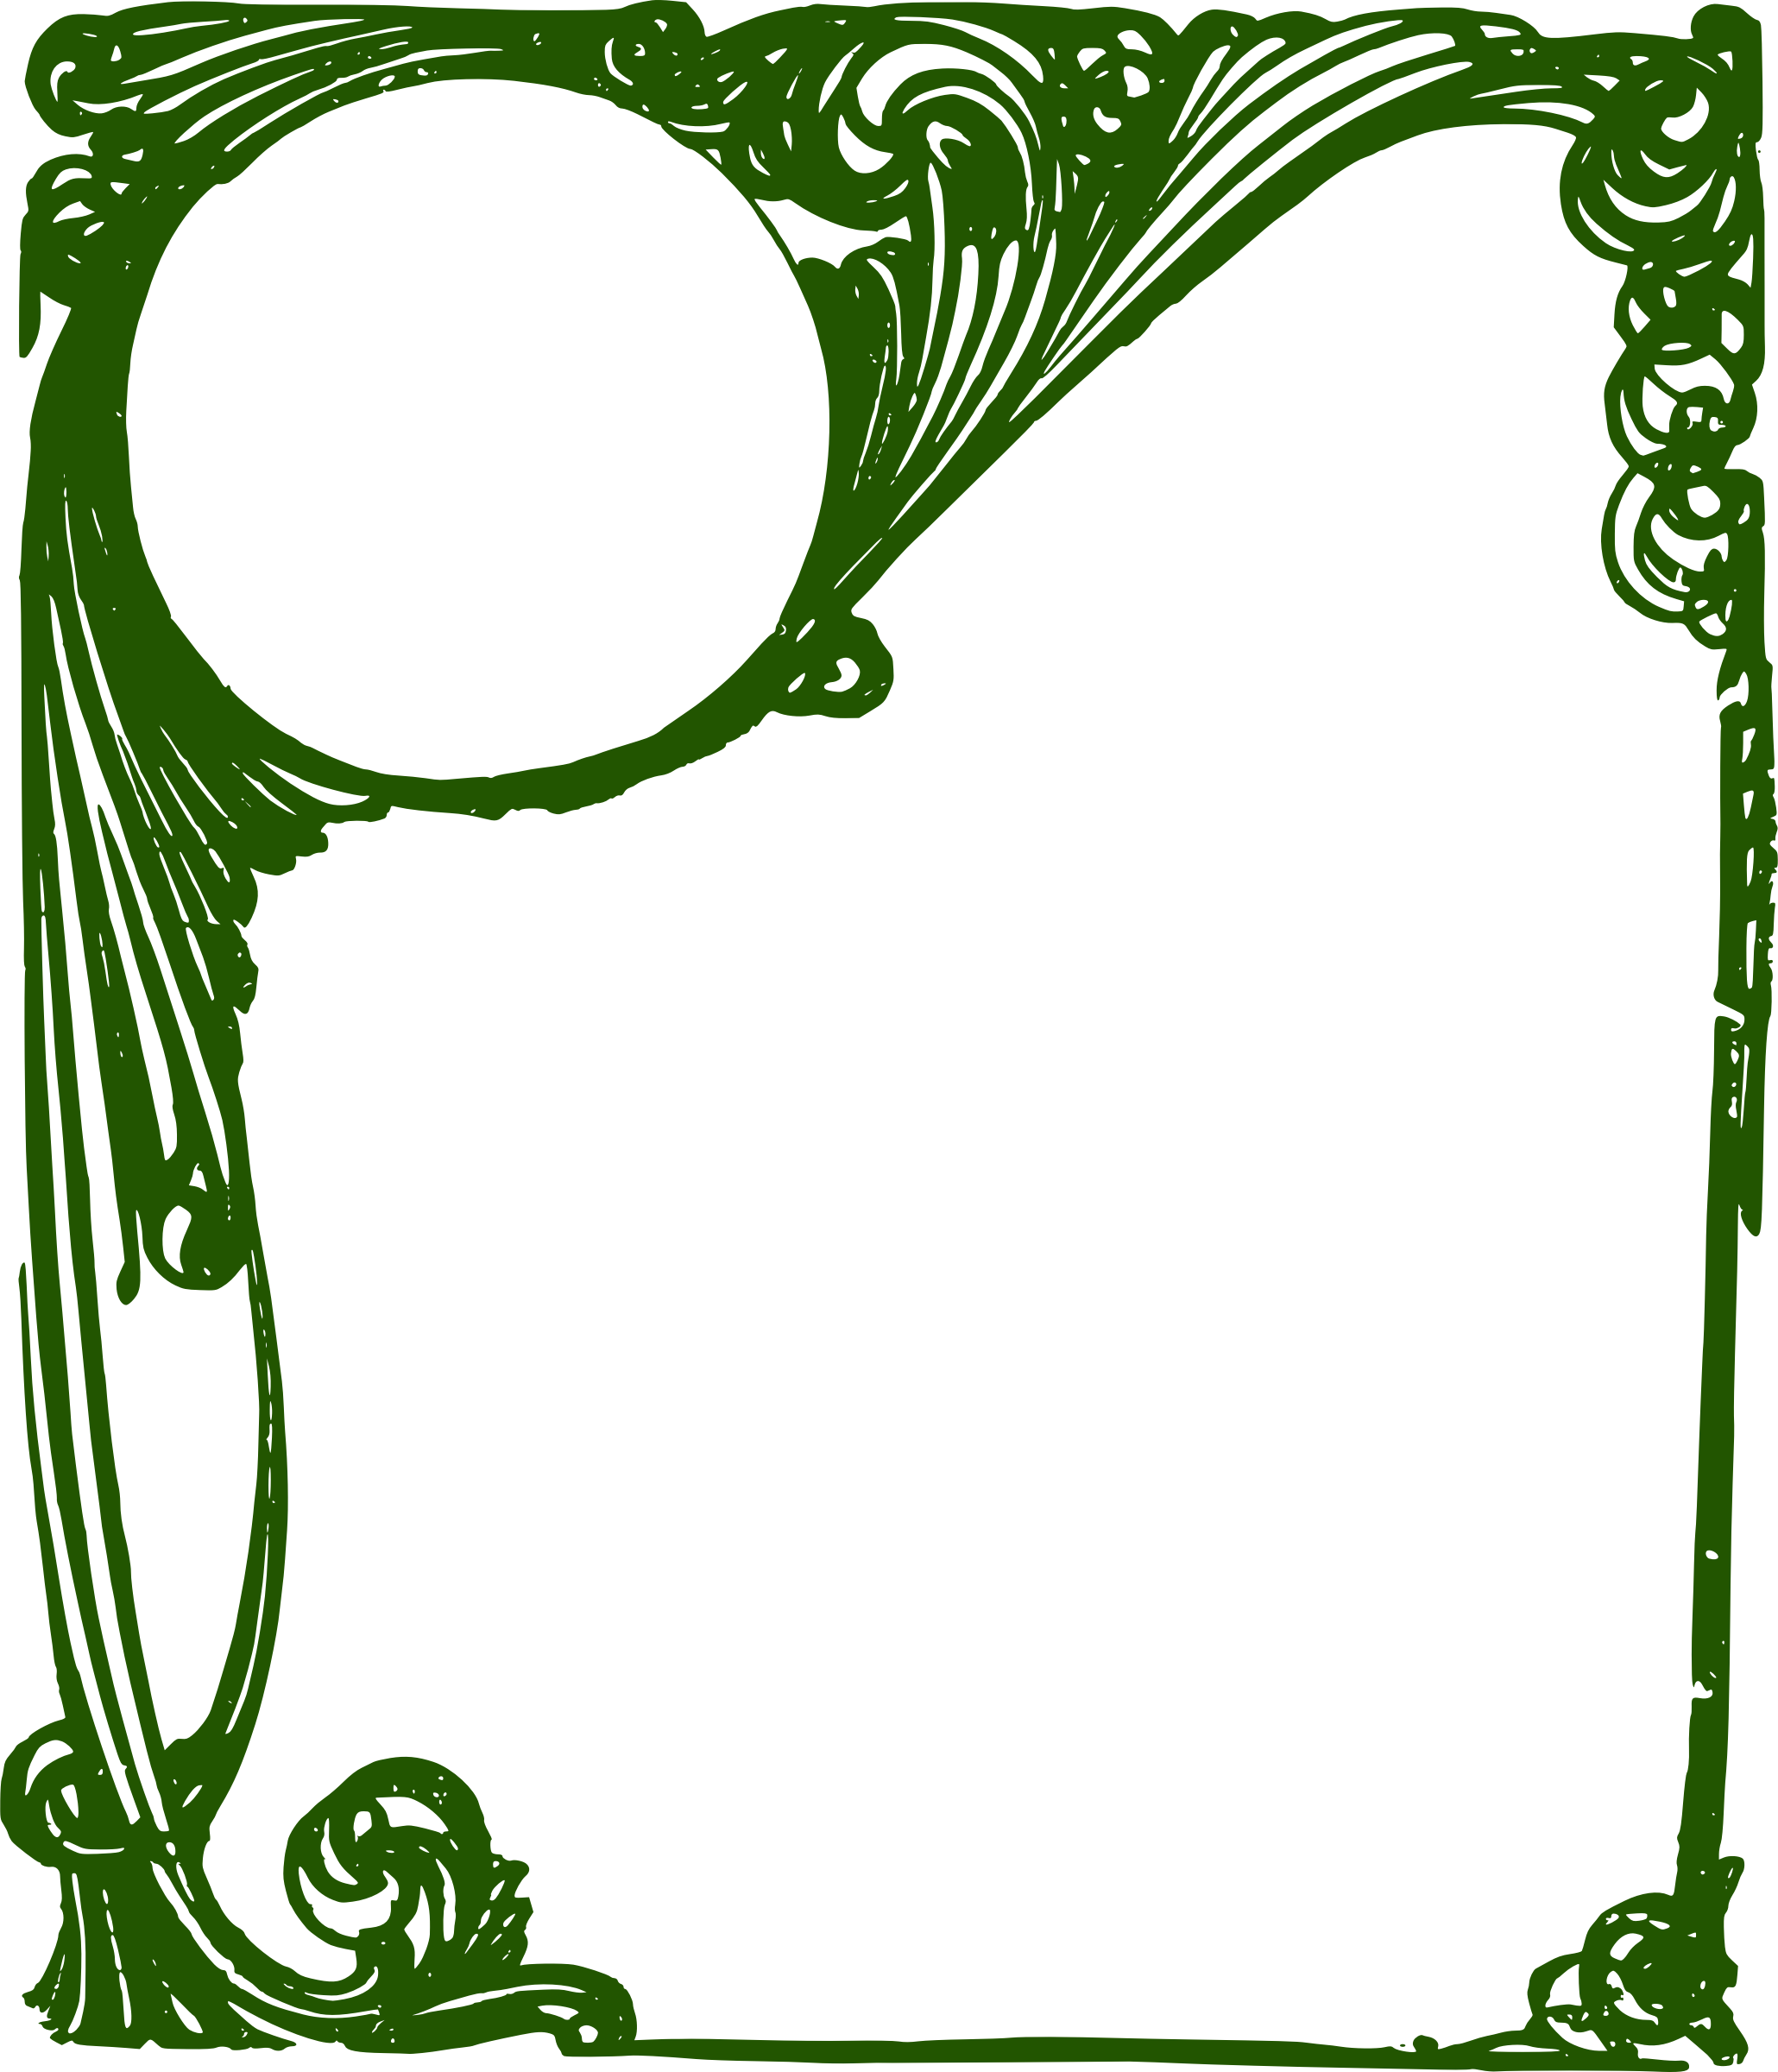 Clipart curly big image. Green frame png